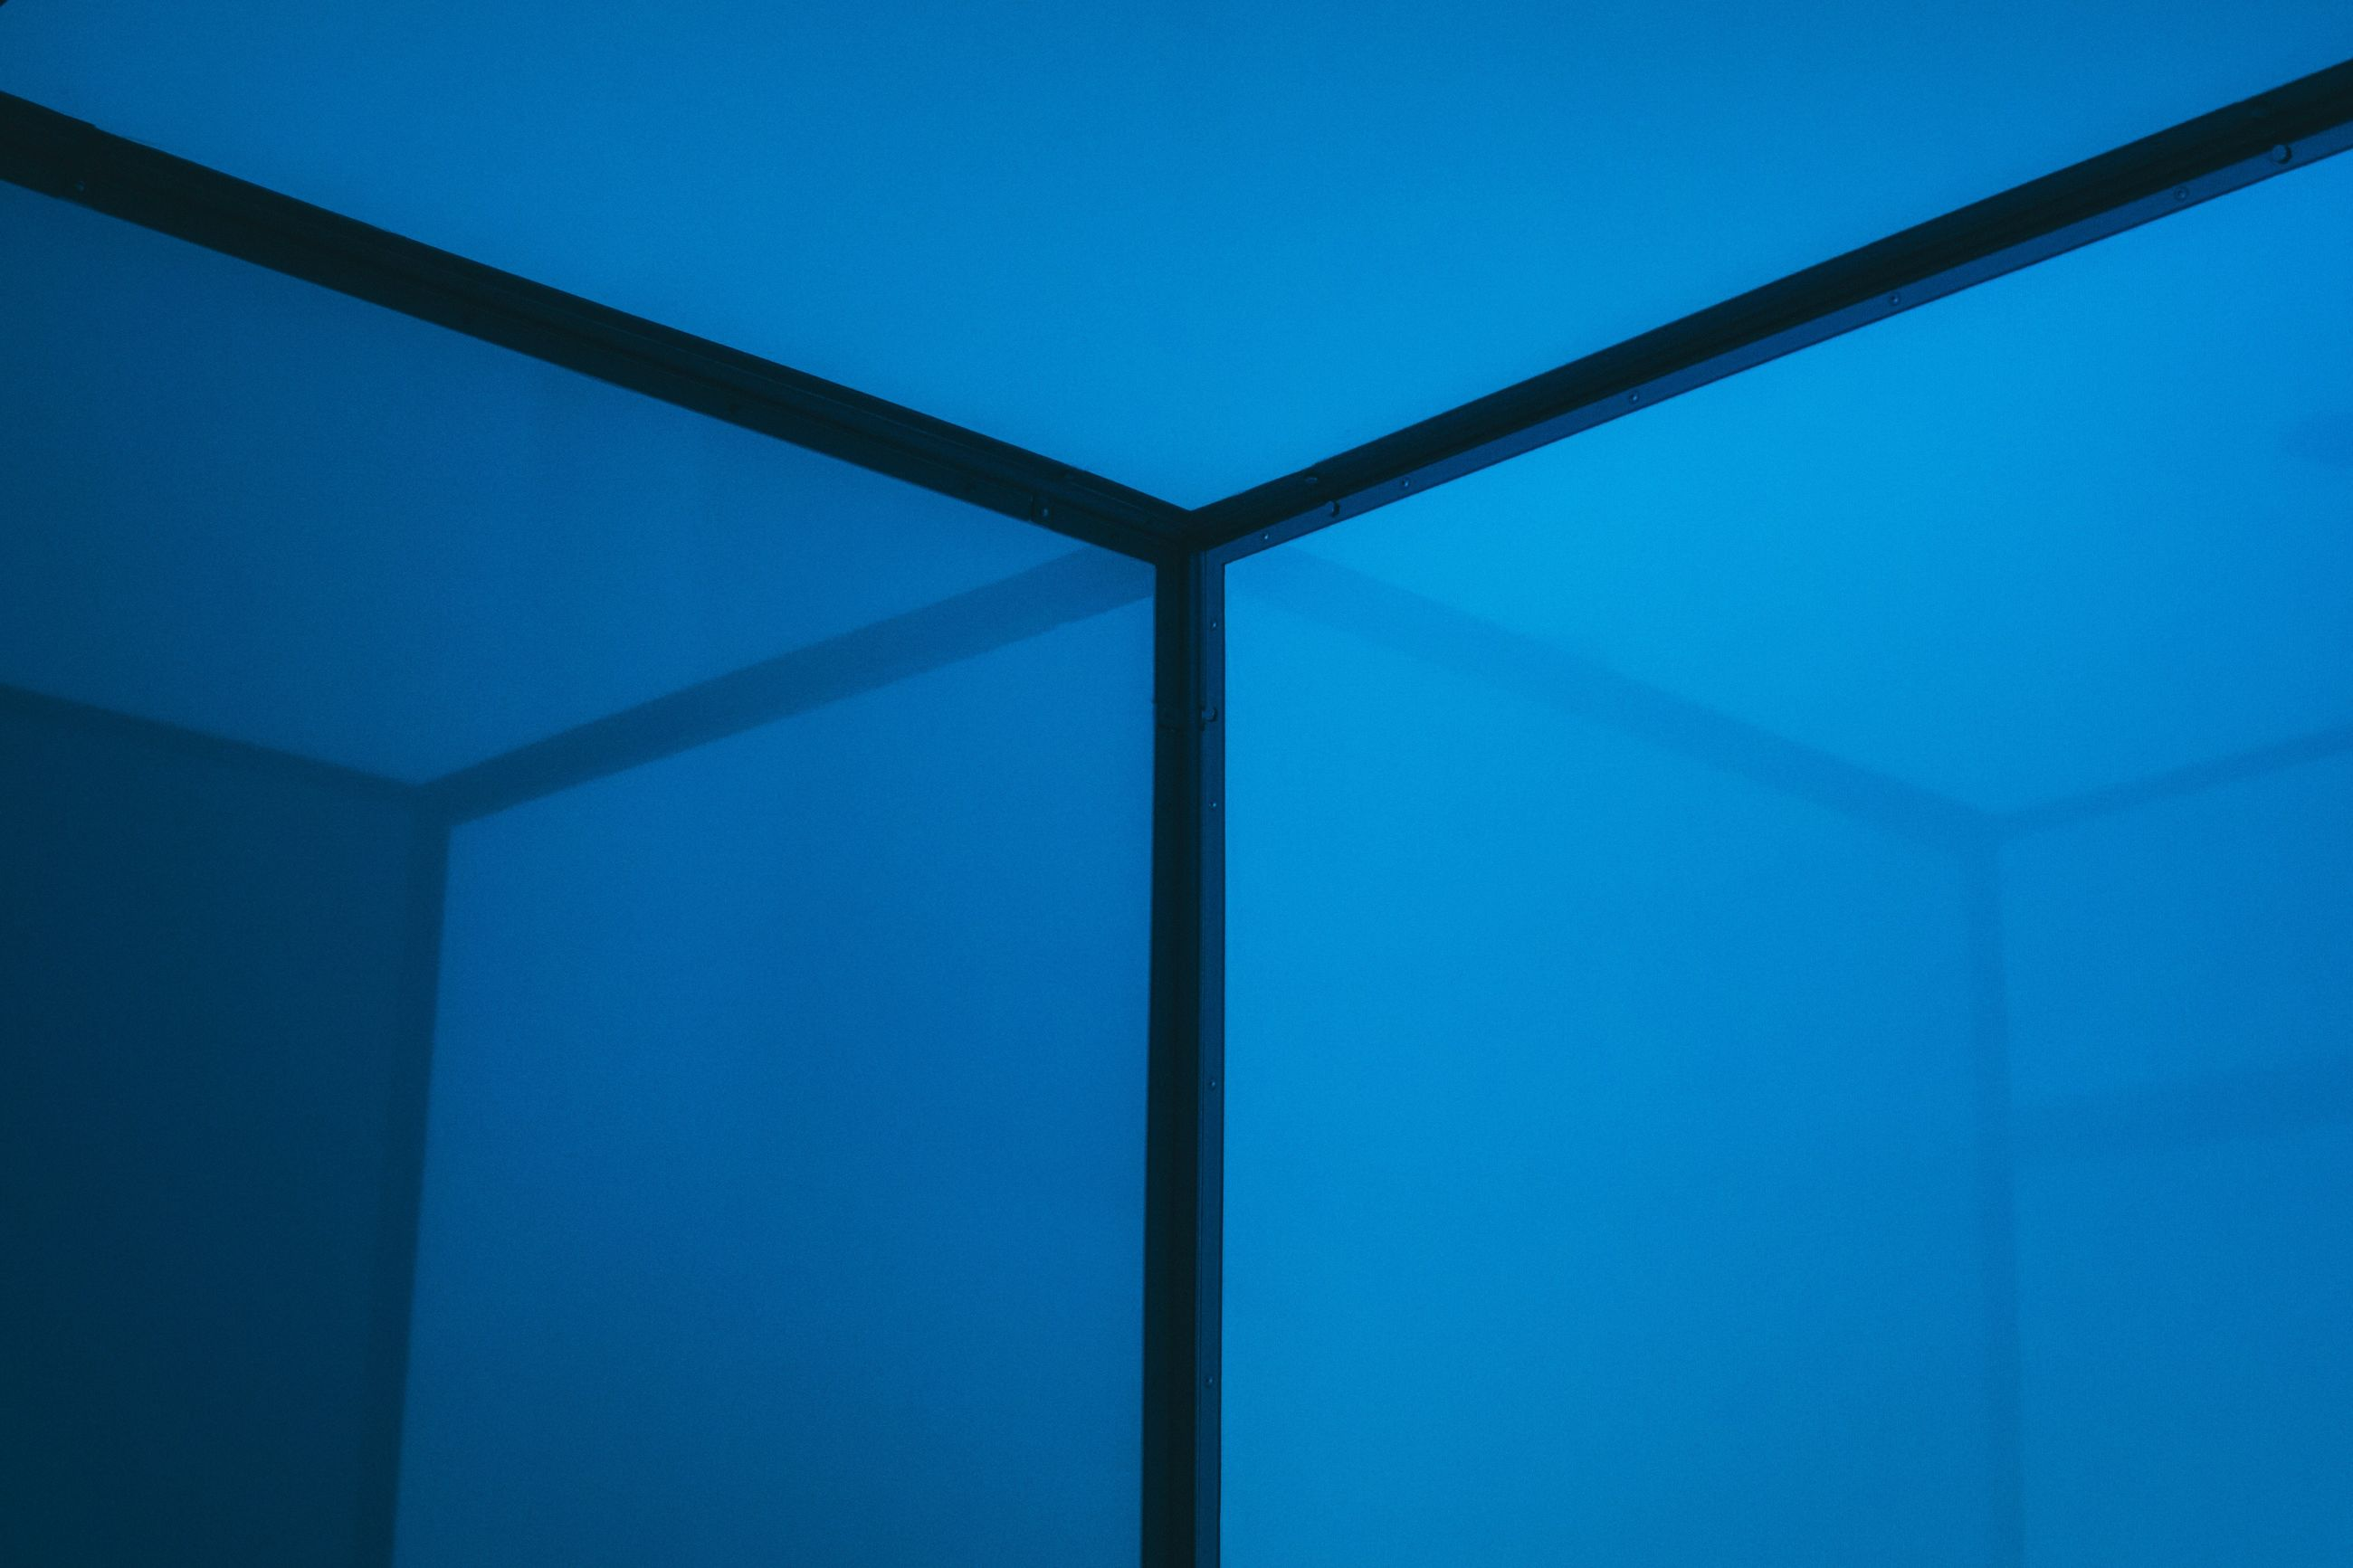 blue, low angle view, no people, full frame, architecture, clear sky, built structure, day, indoors, close-up, sky